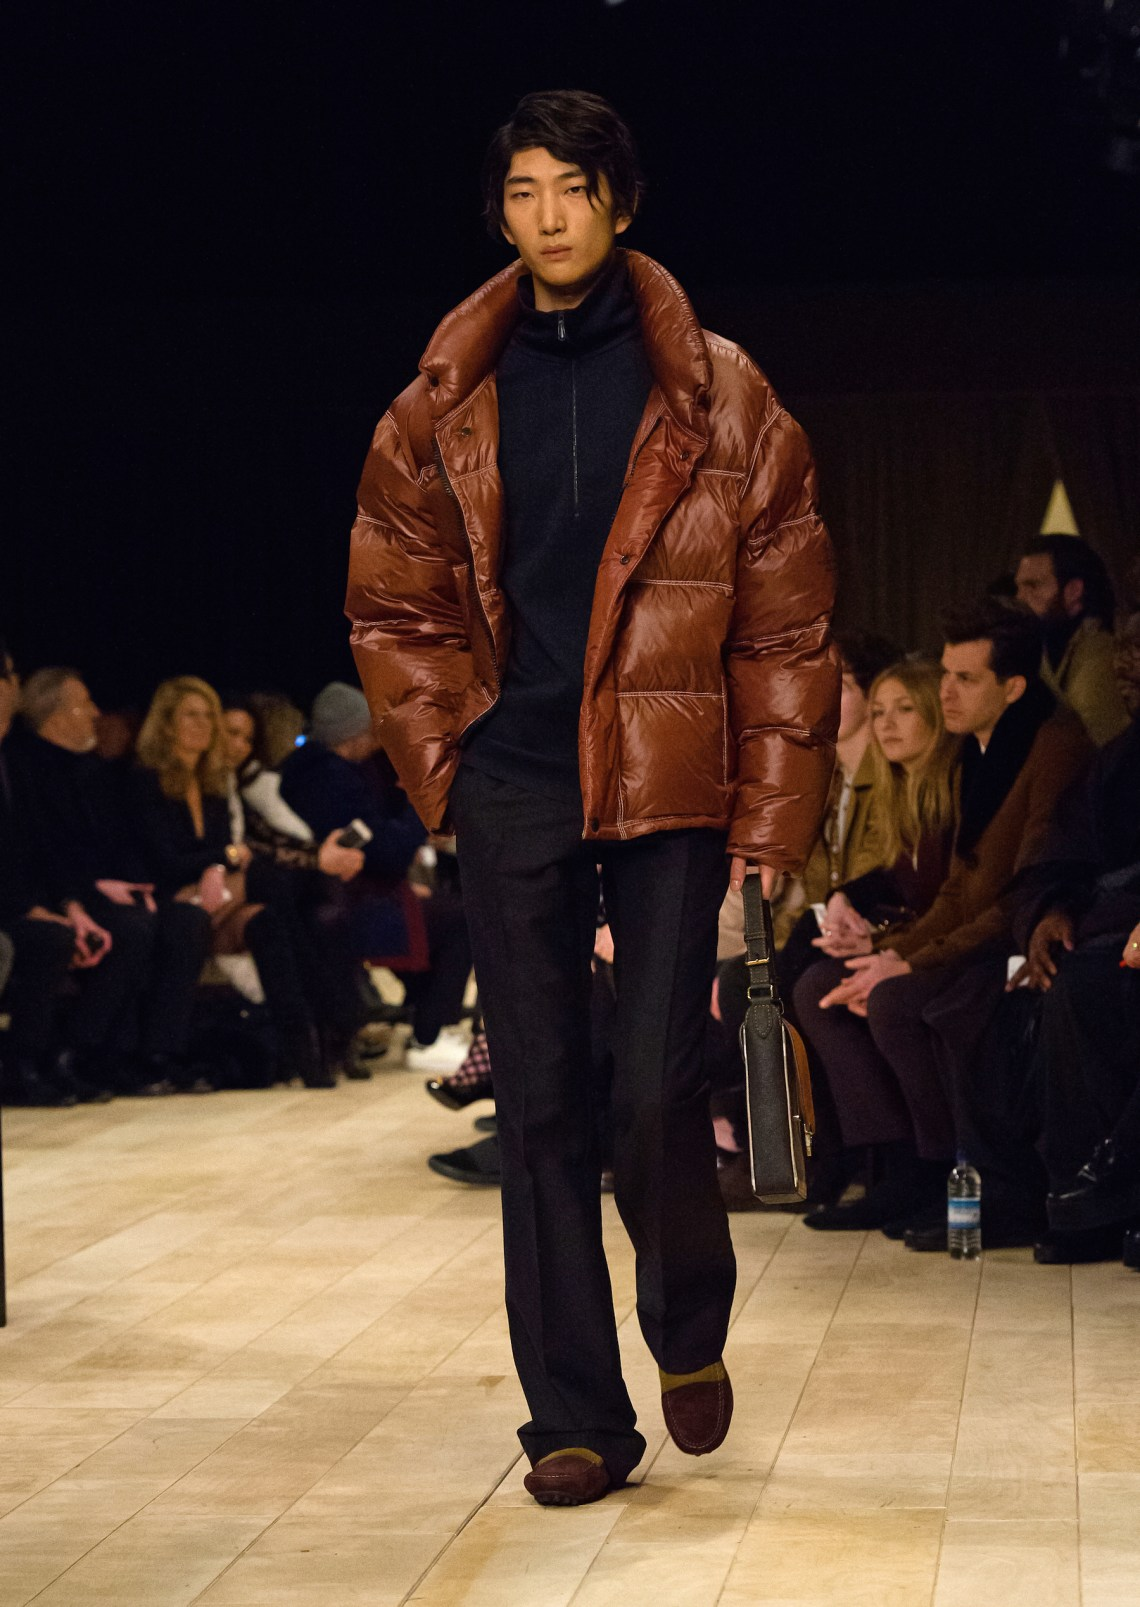 BURBERRY - Fall Winter 2016/17